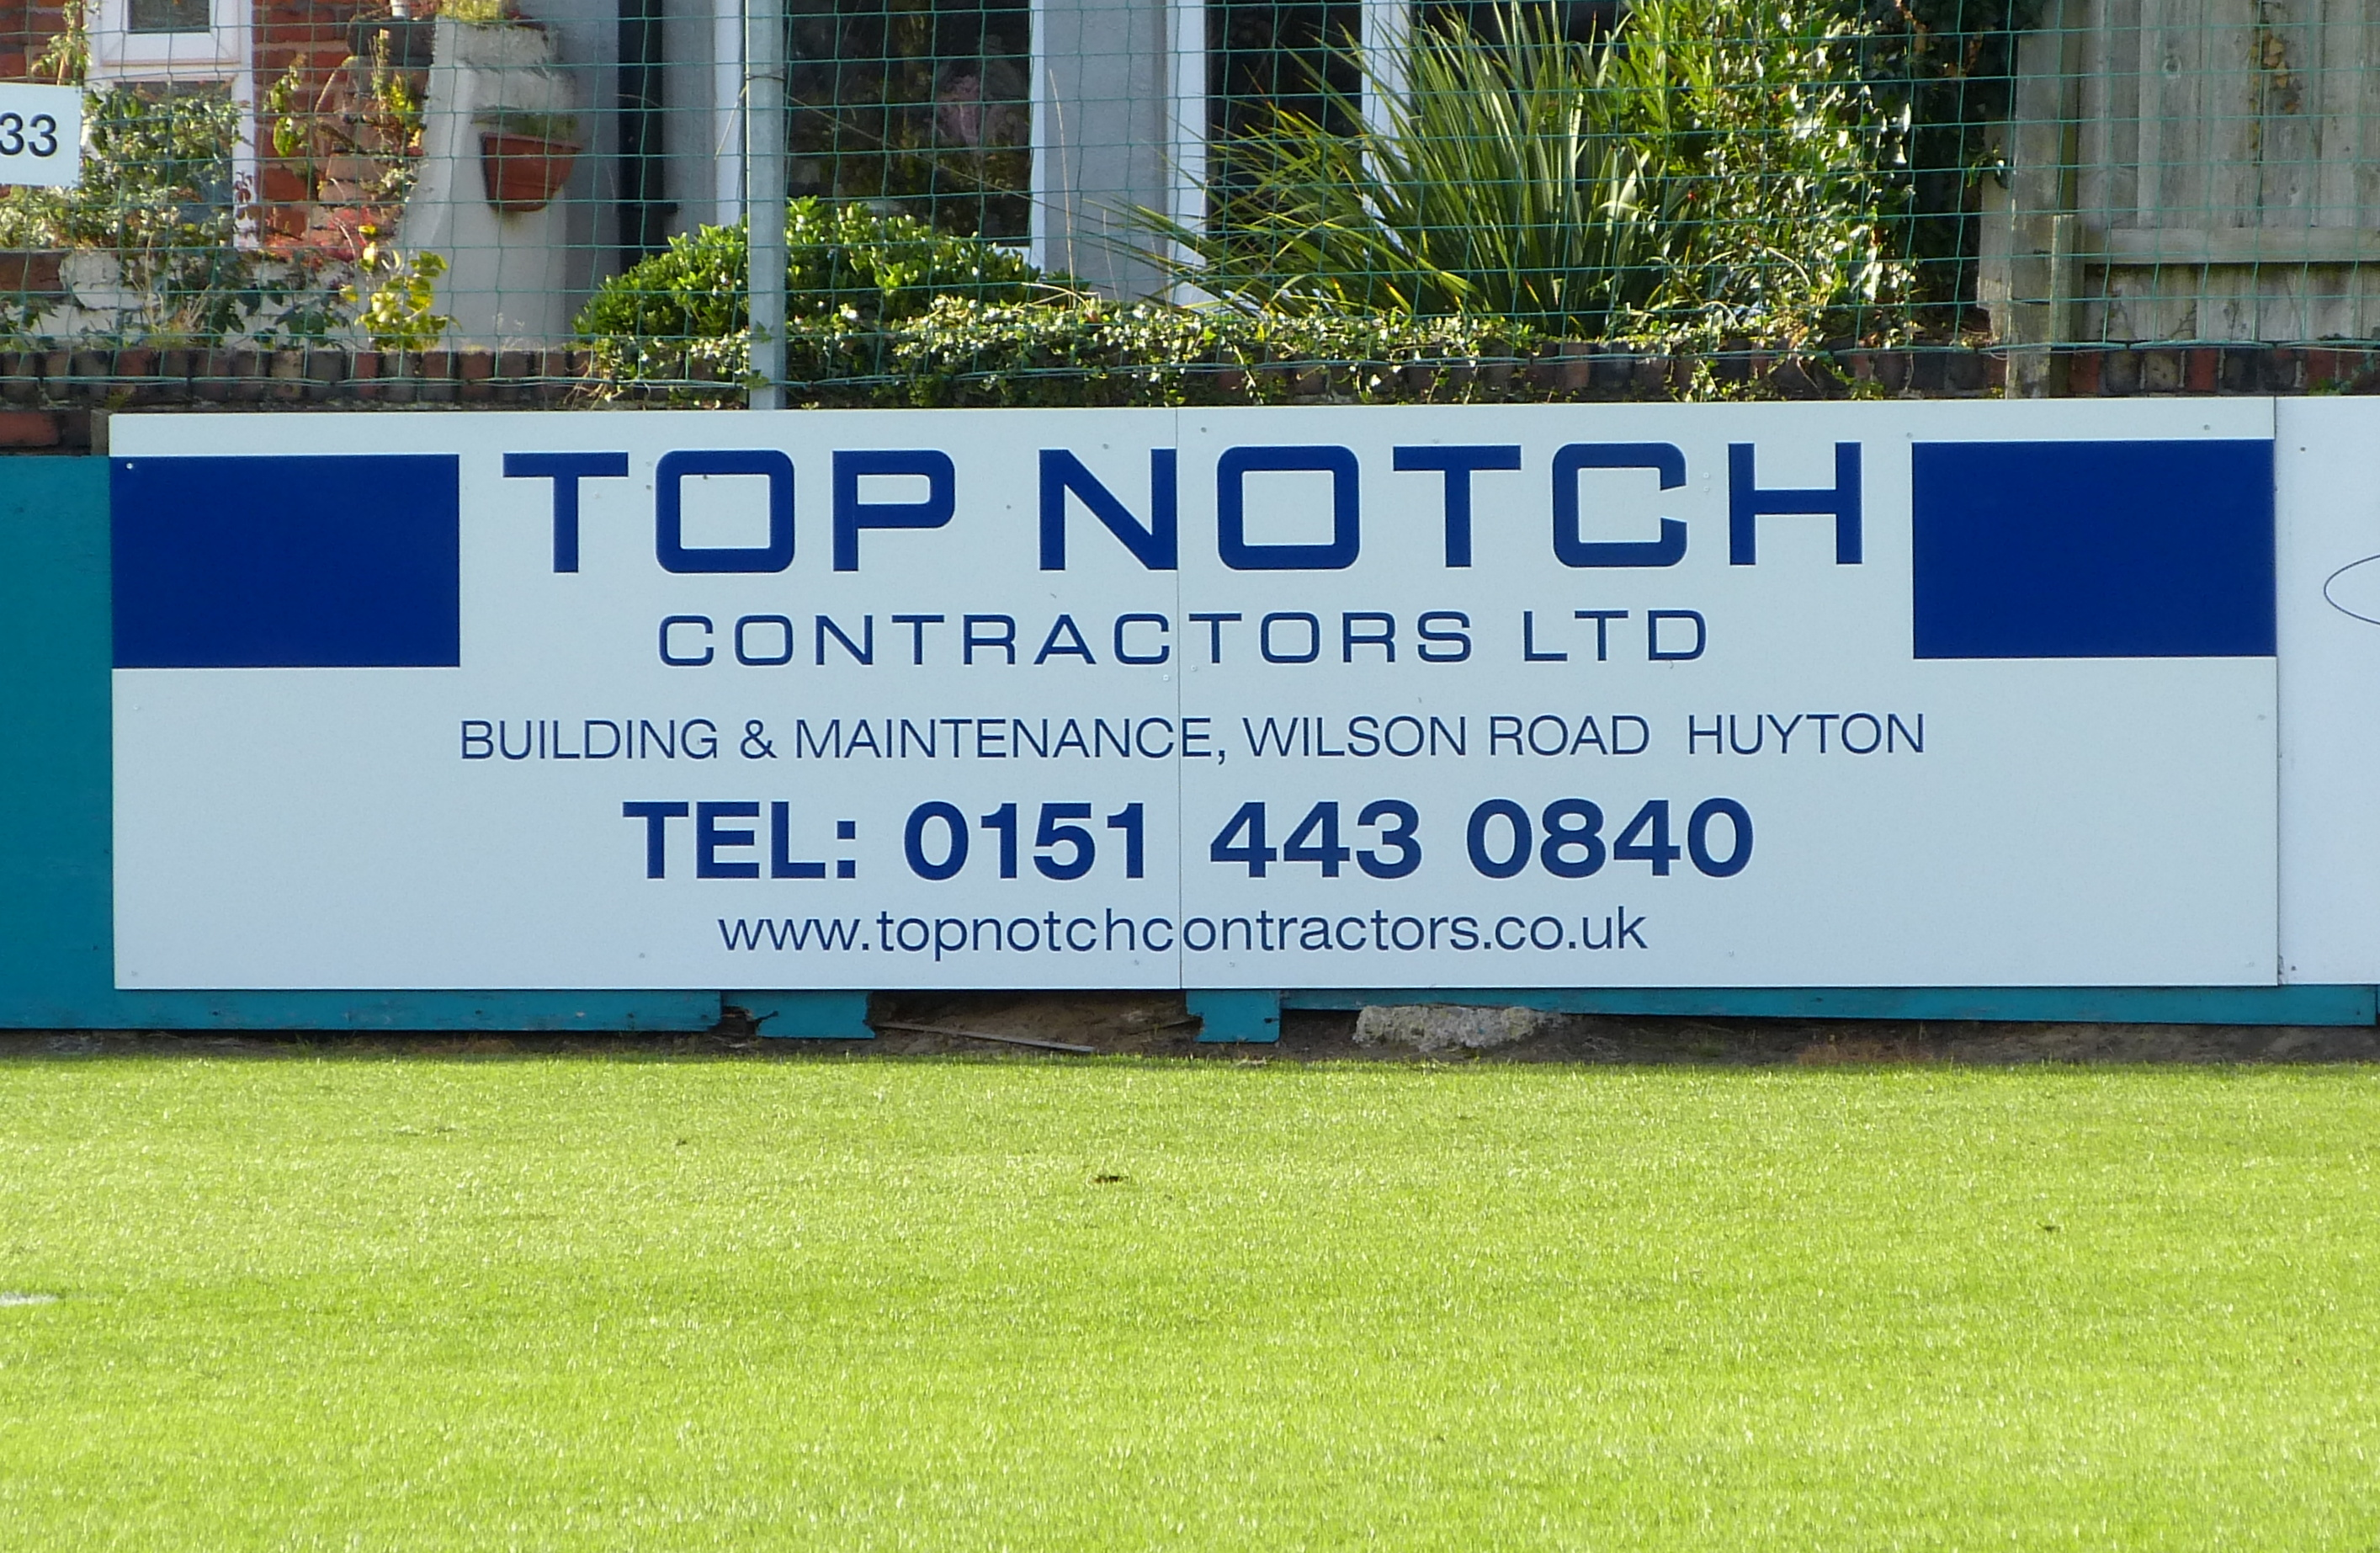 Top Notch are now proud to sponsor Marine F.C.